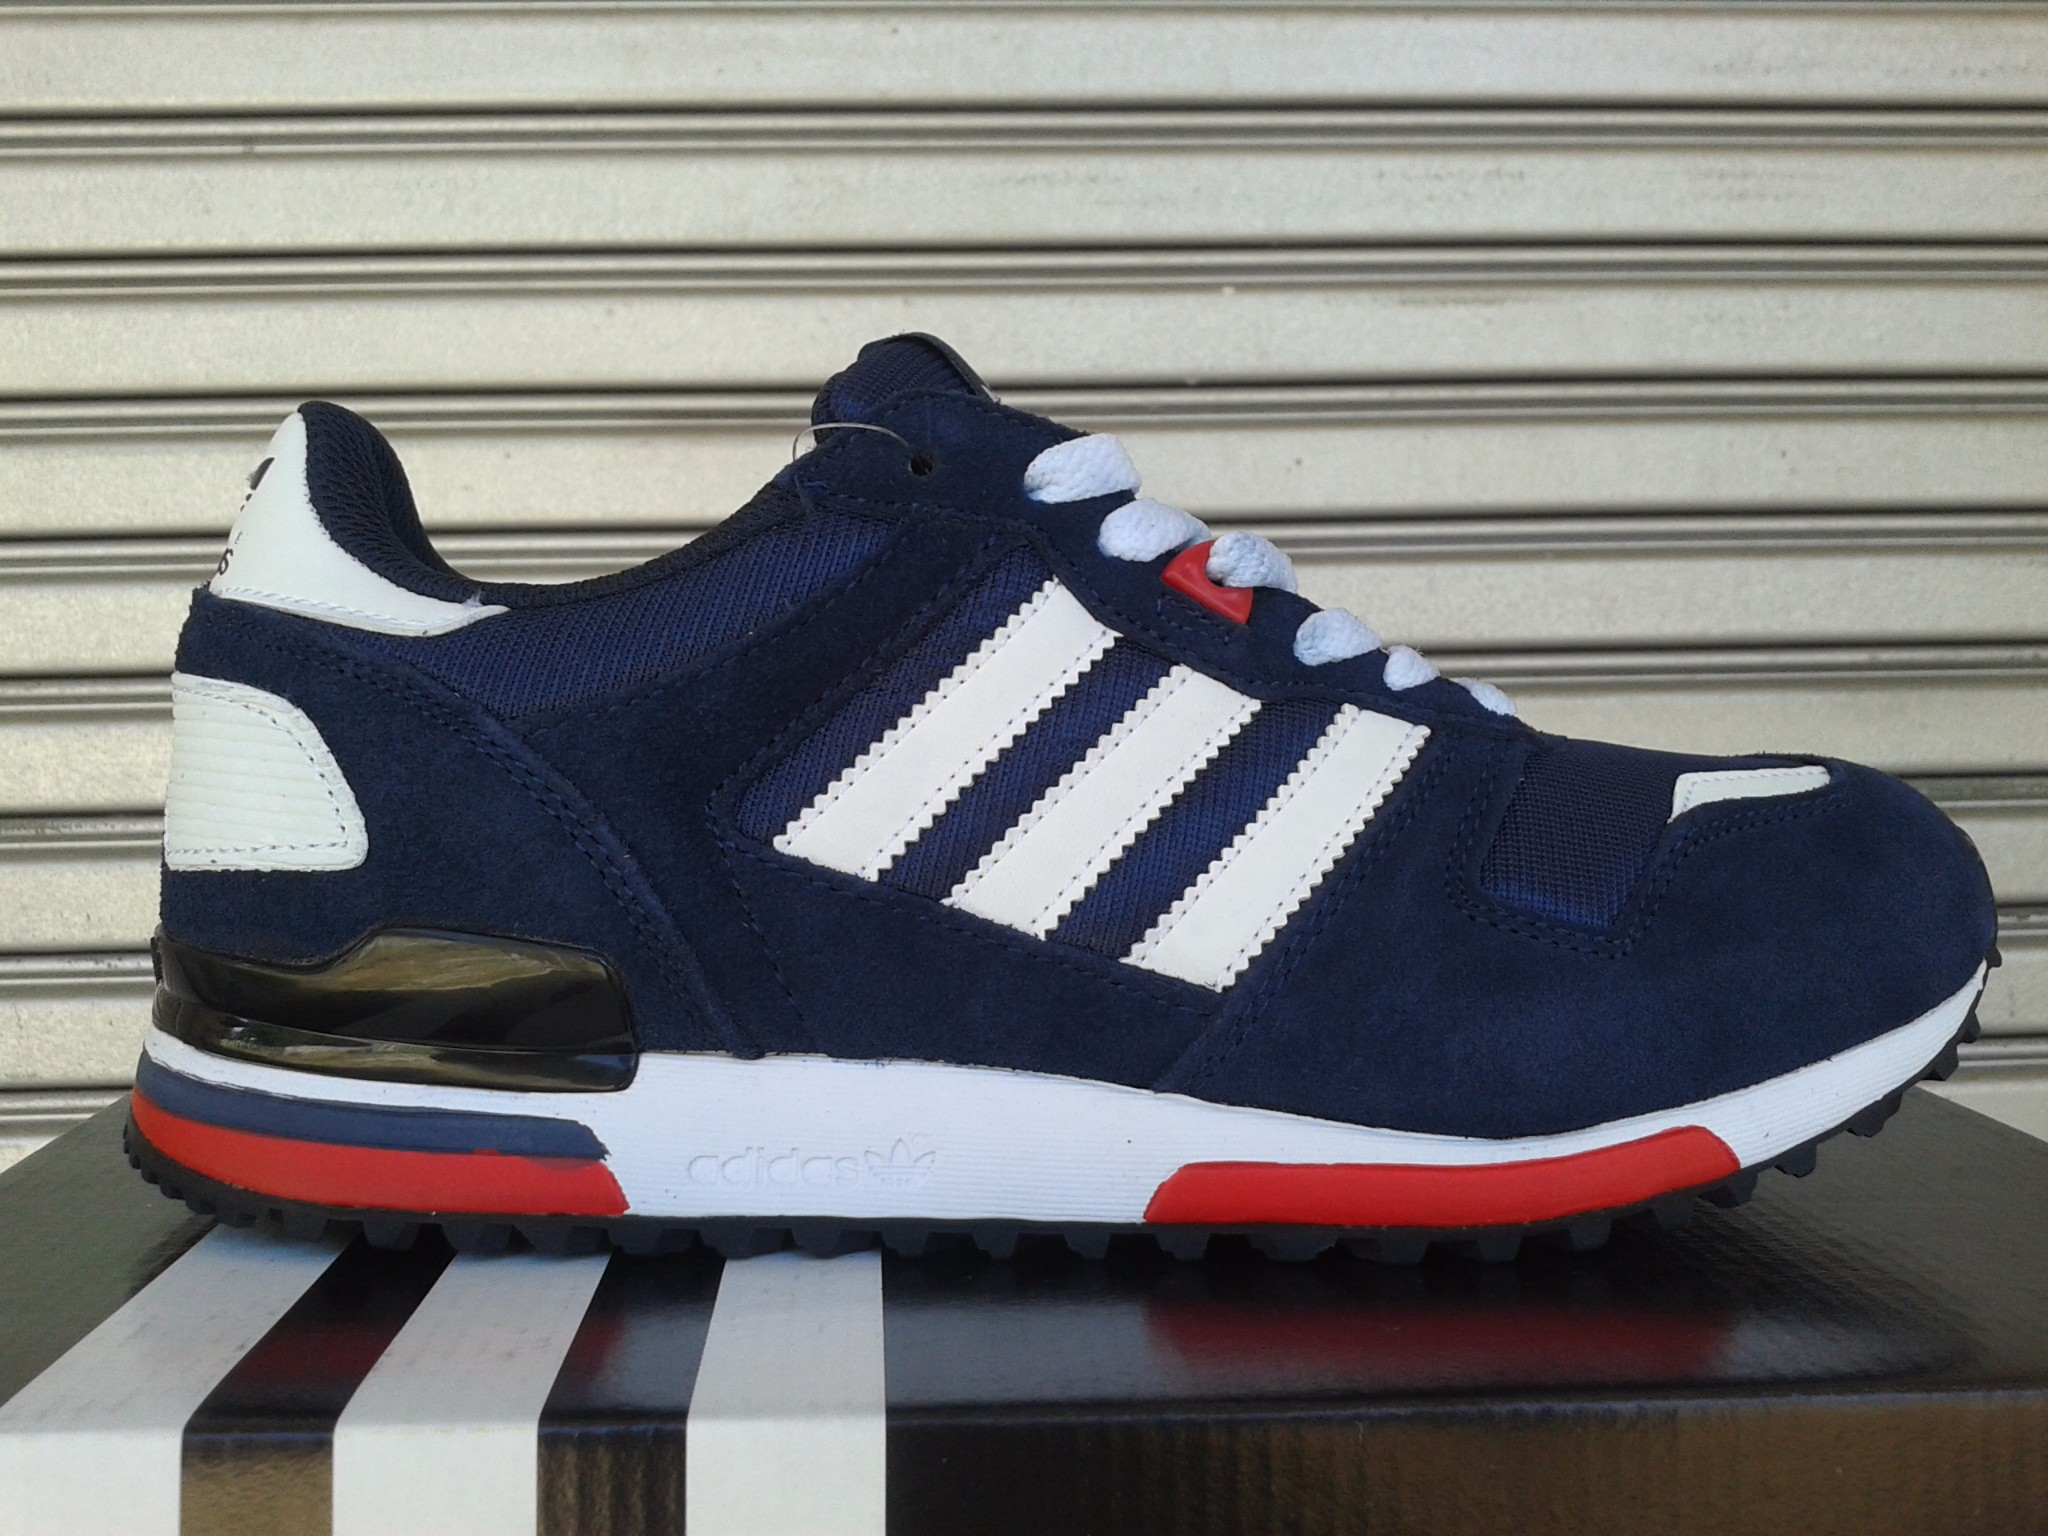 f86428e29 where can i buy jual adidas zx 700 f36ea f22b4